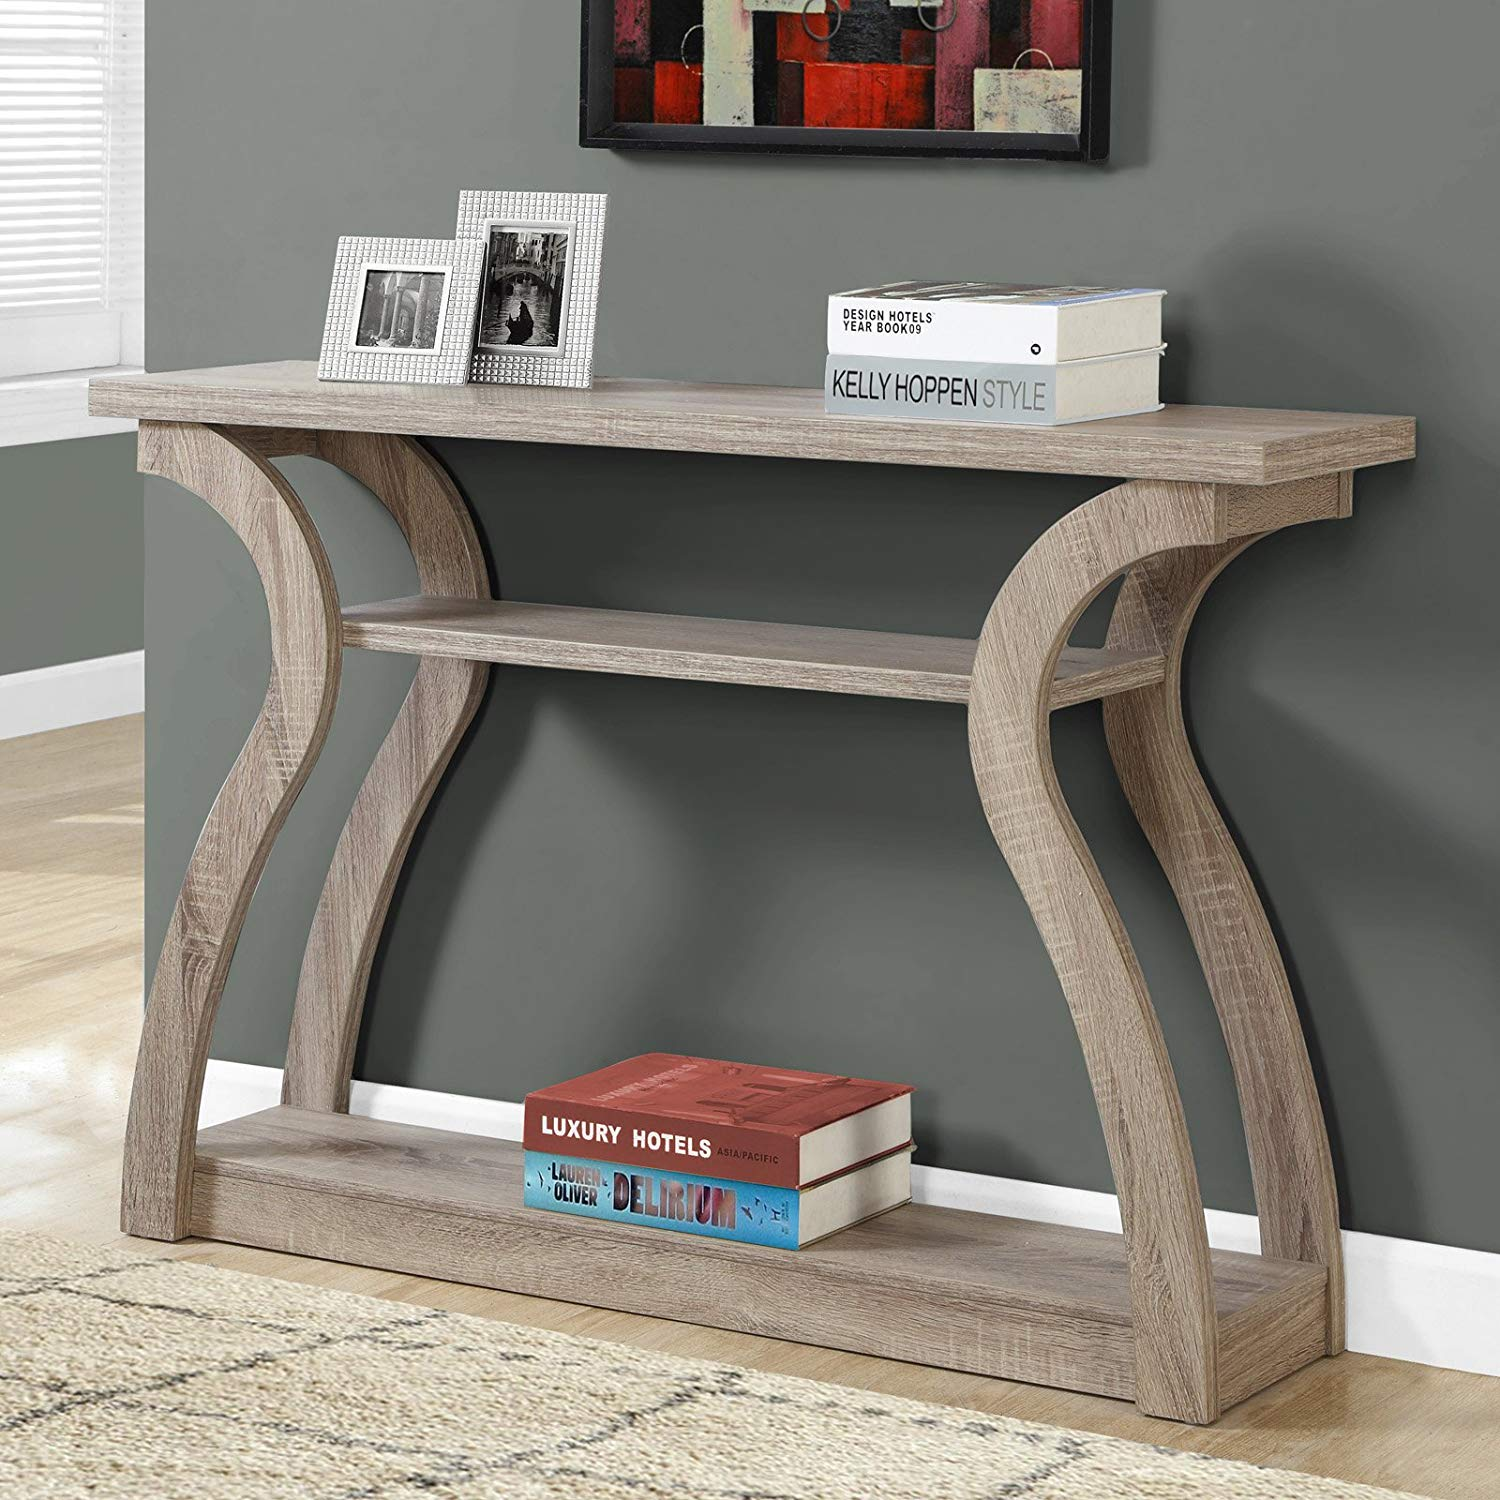 tiered curved console table with storage hall accent tables for living room entryway desk organizer three shelves wooden furniture dark taupe finish windham placemats and coasters